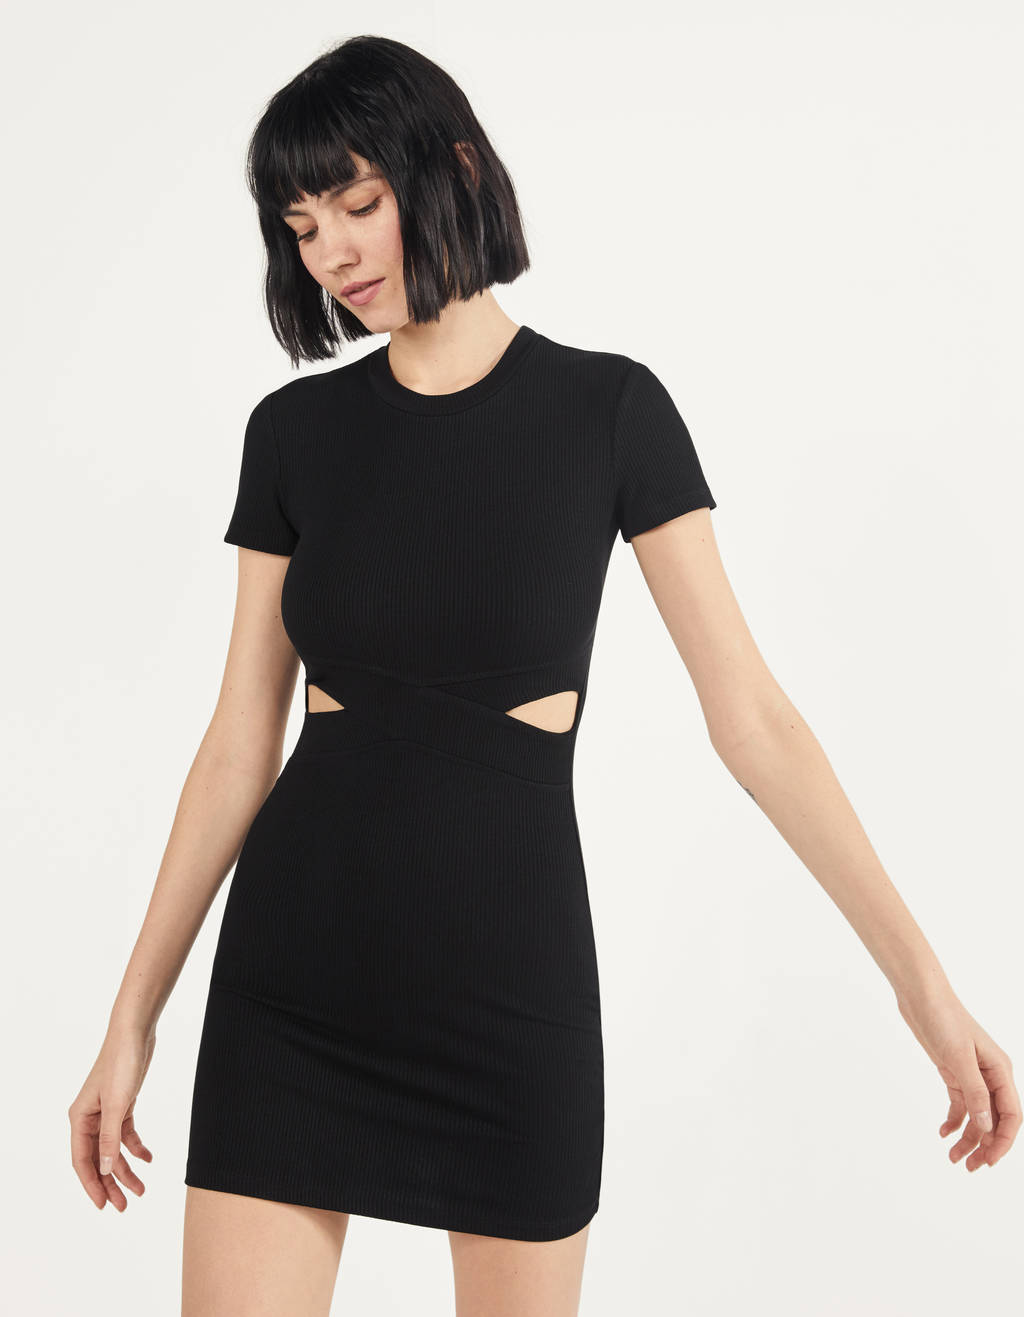 Short cut-out dress